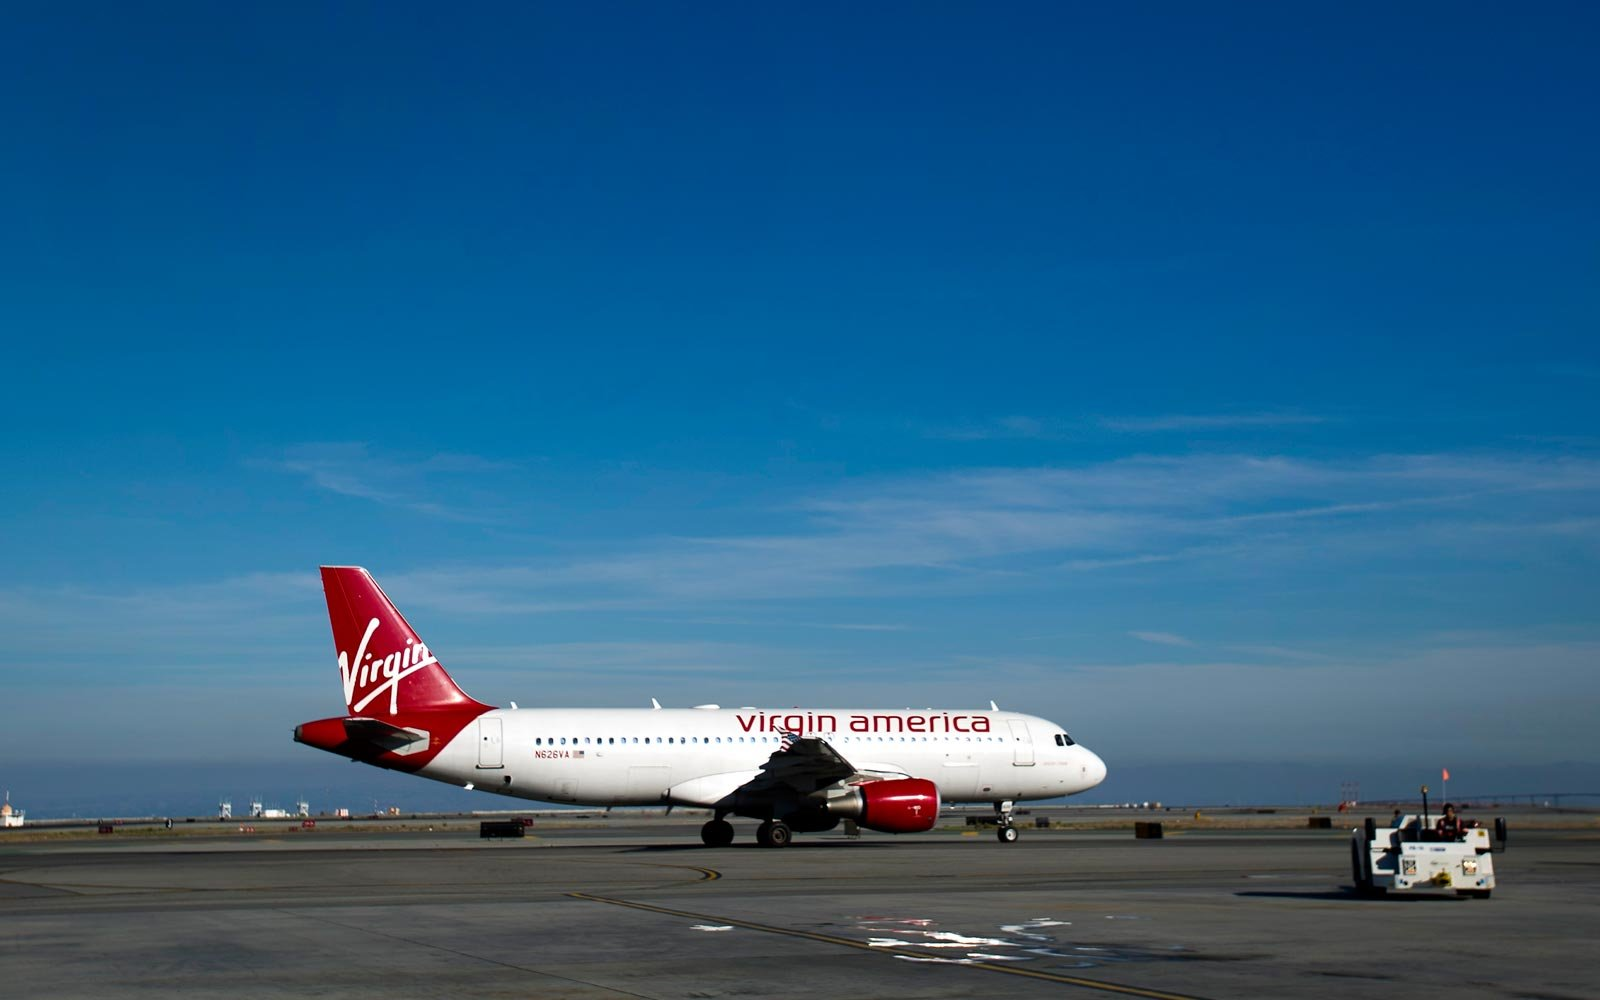 Virgin America Airplane in San Francisco